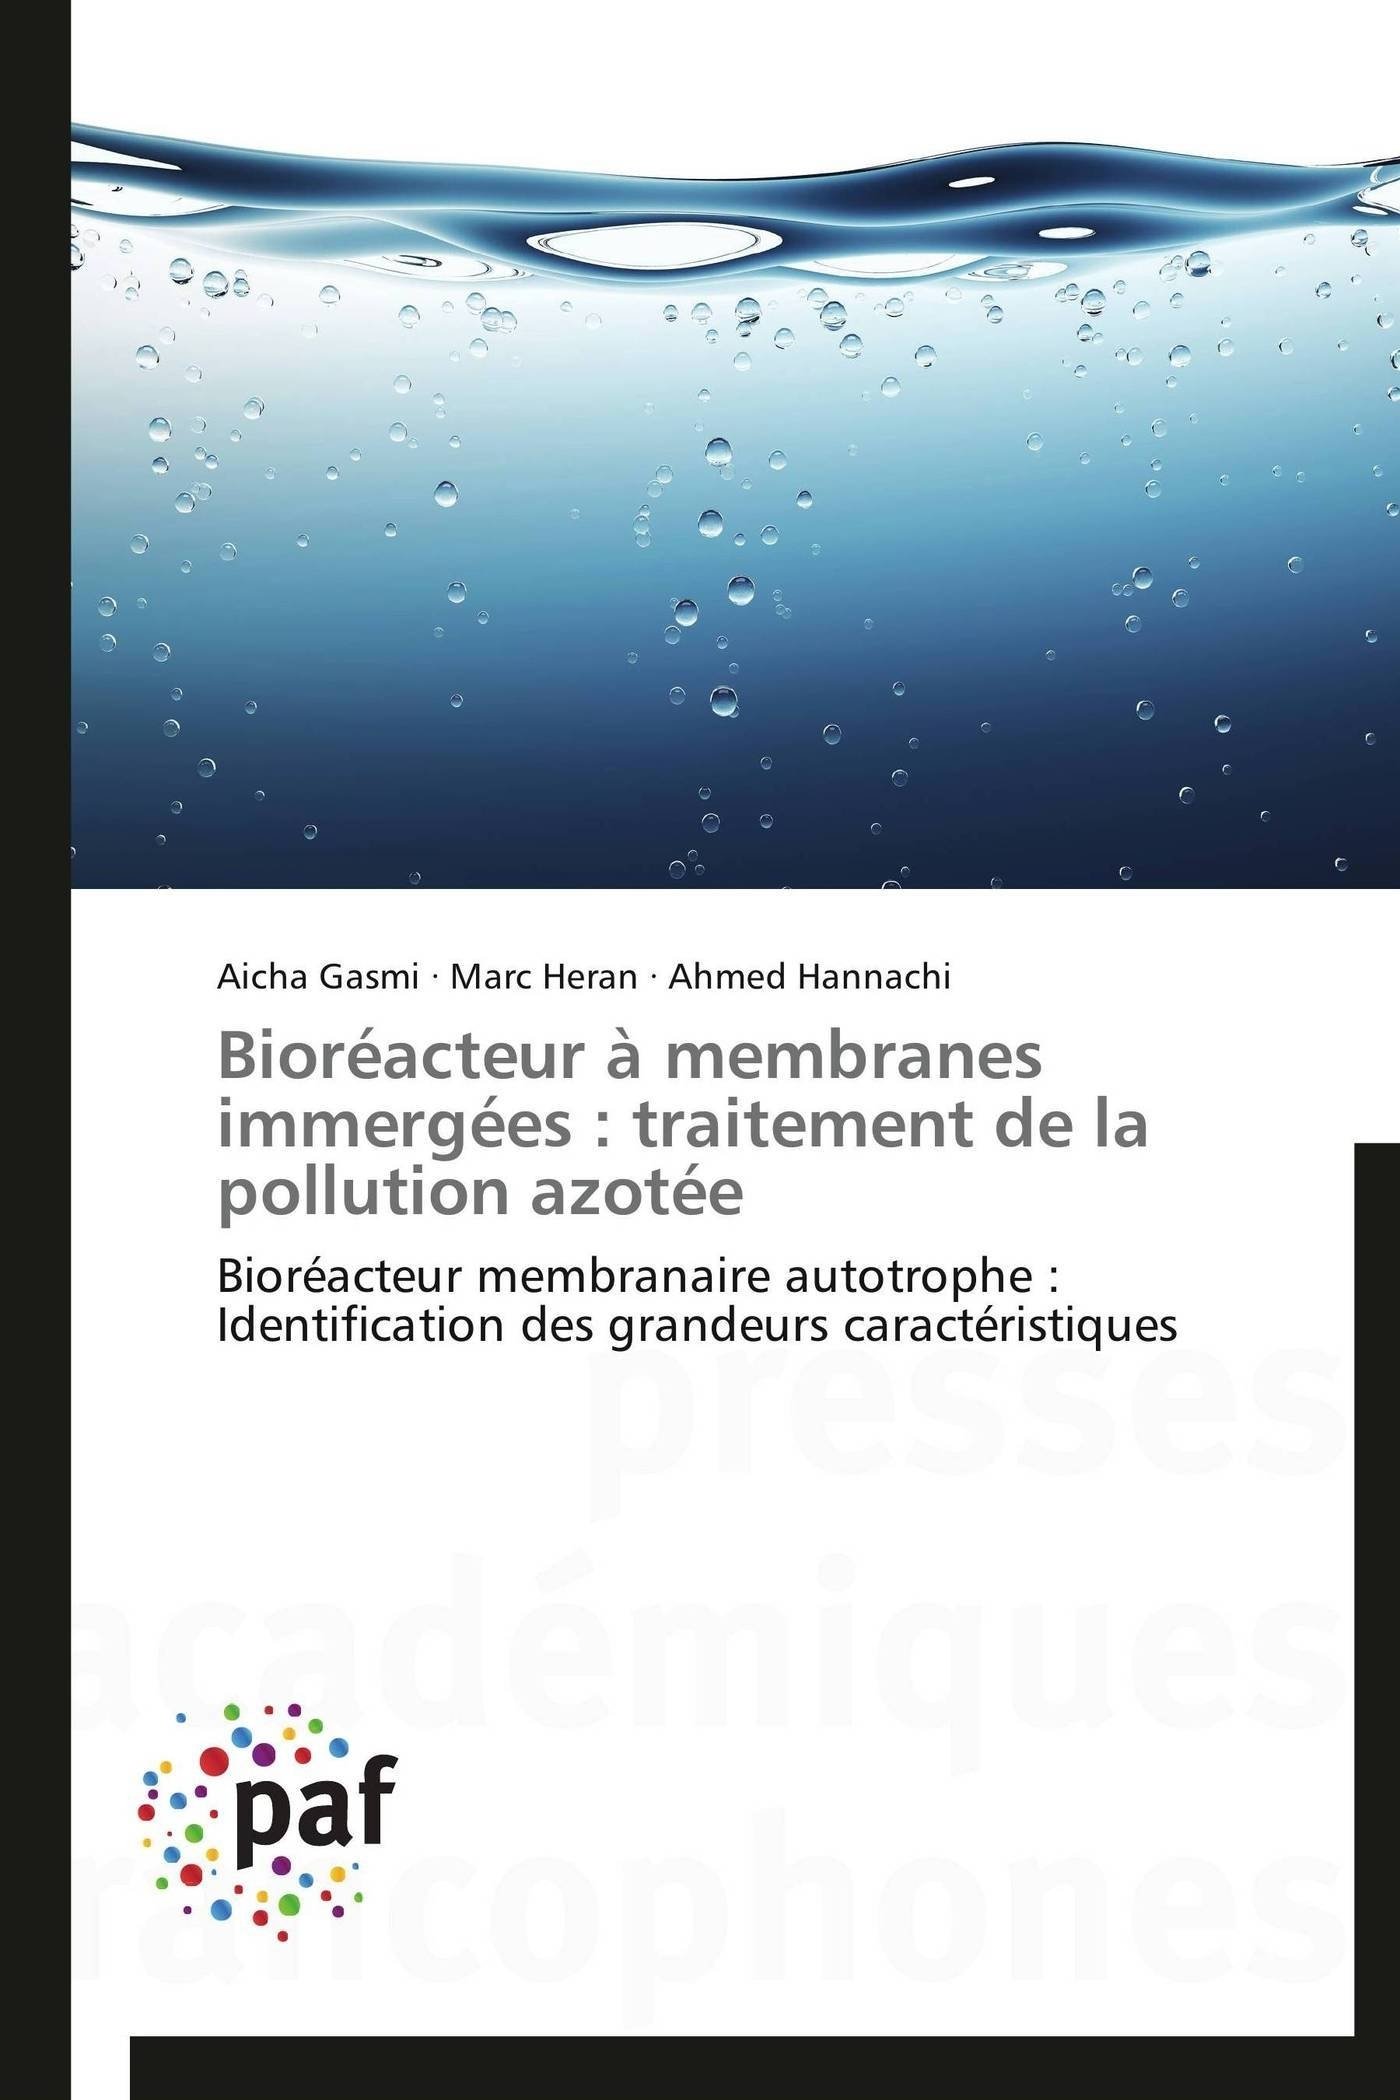 BIOREACTEUR A MEMBRANES IMMERGEES : TRAITEMENT DE LA POLLUTION AZOTEE